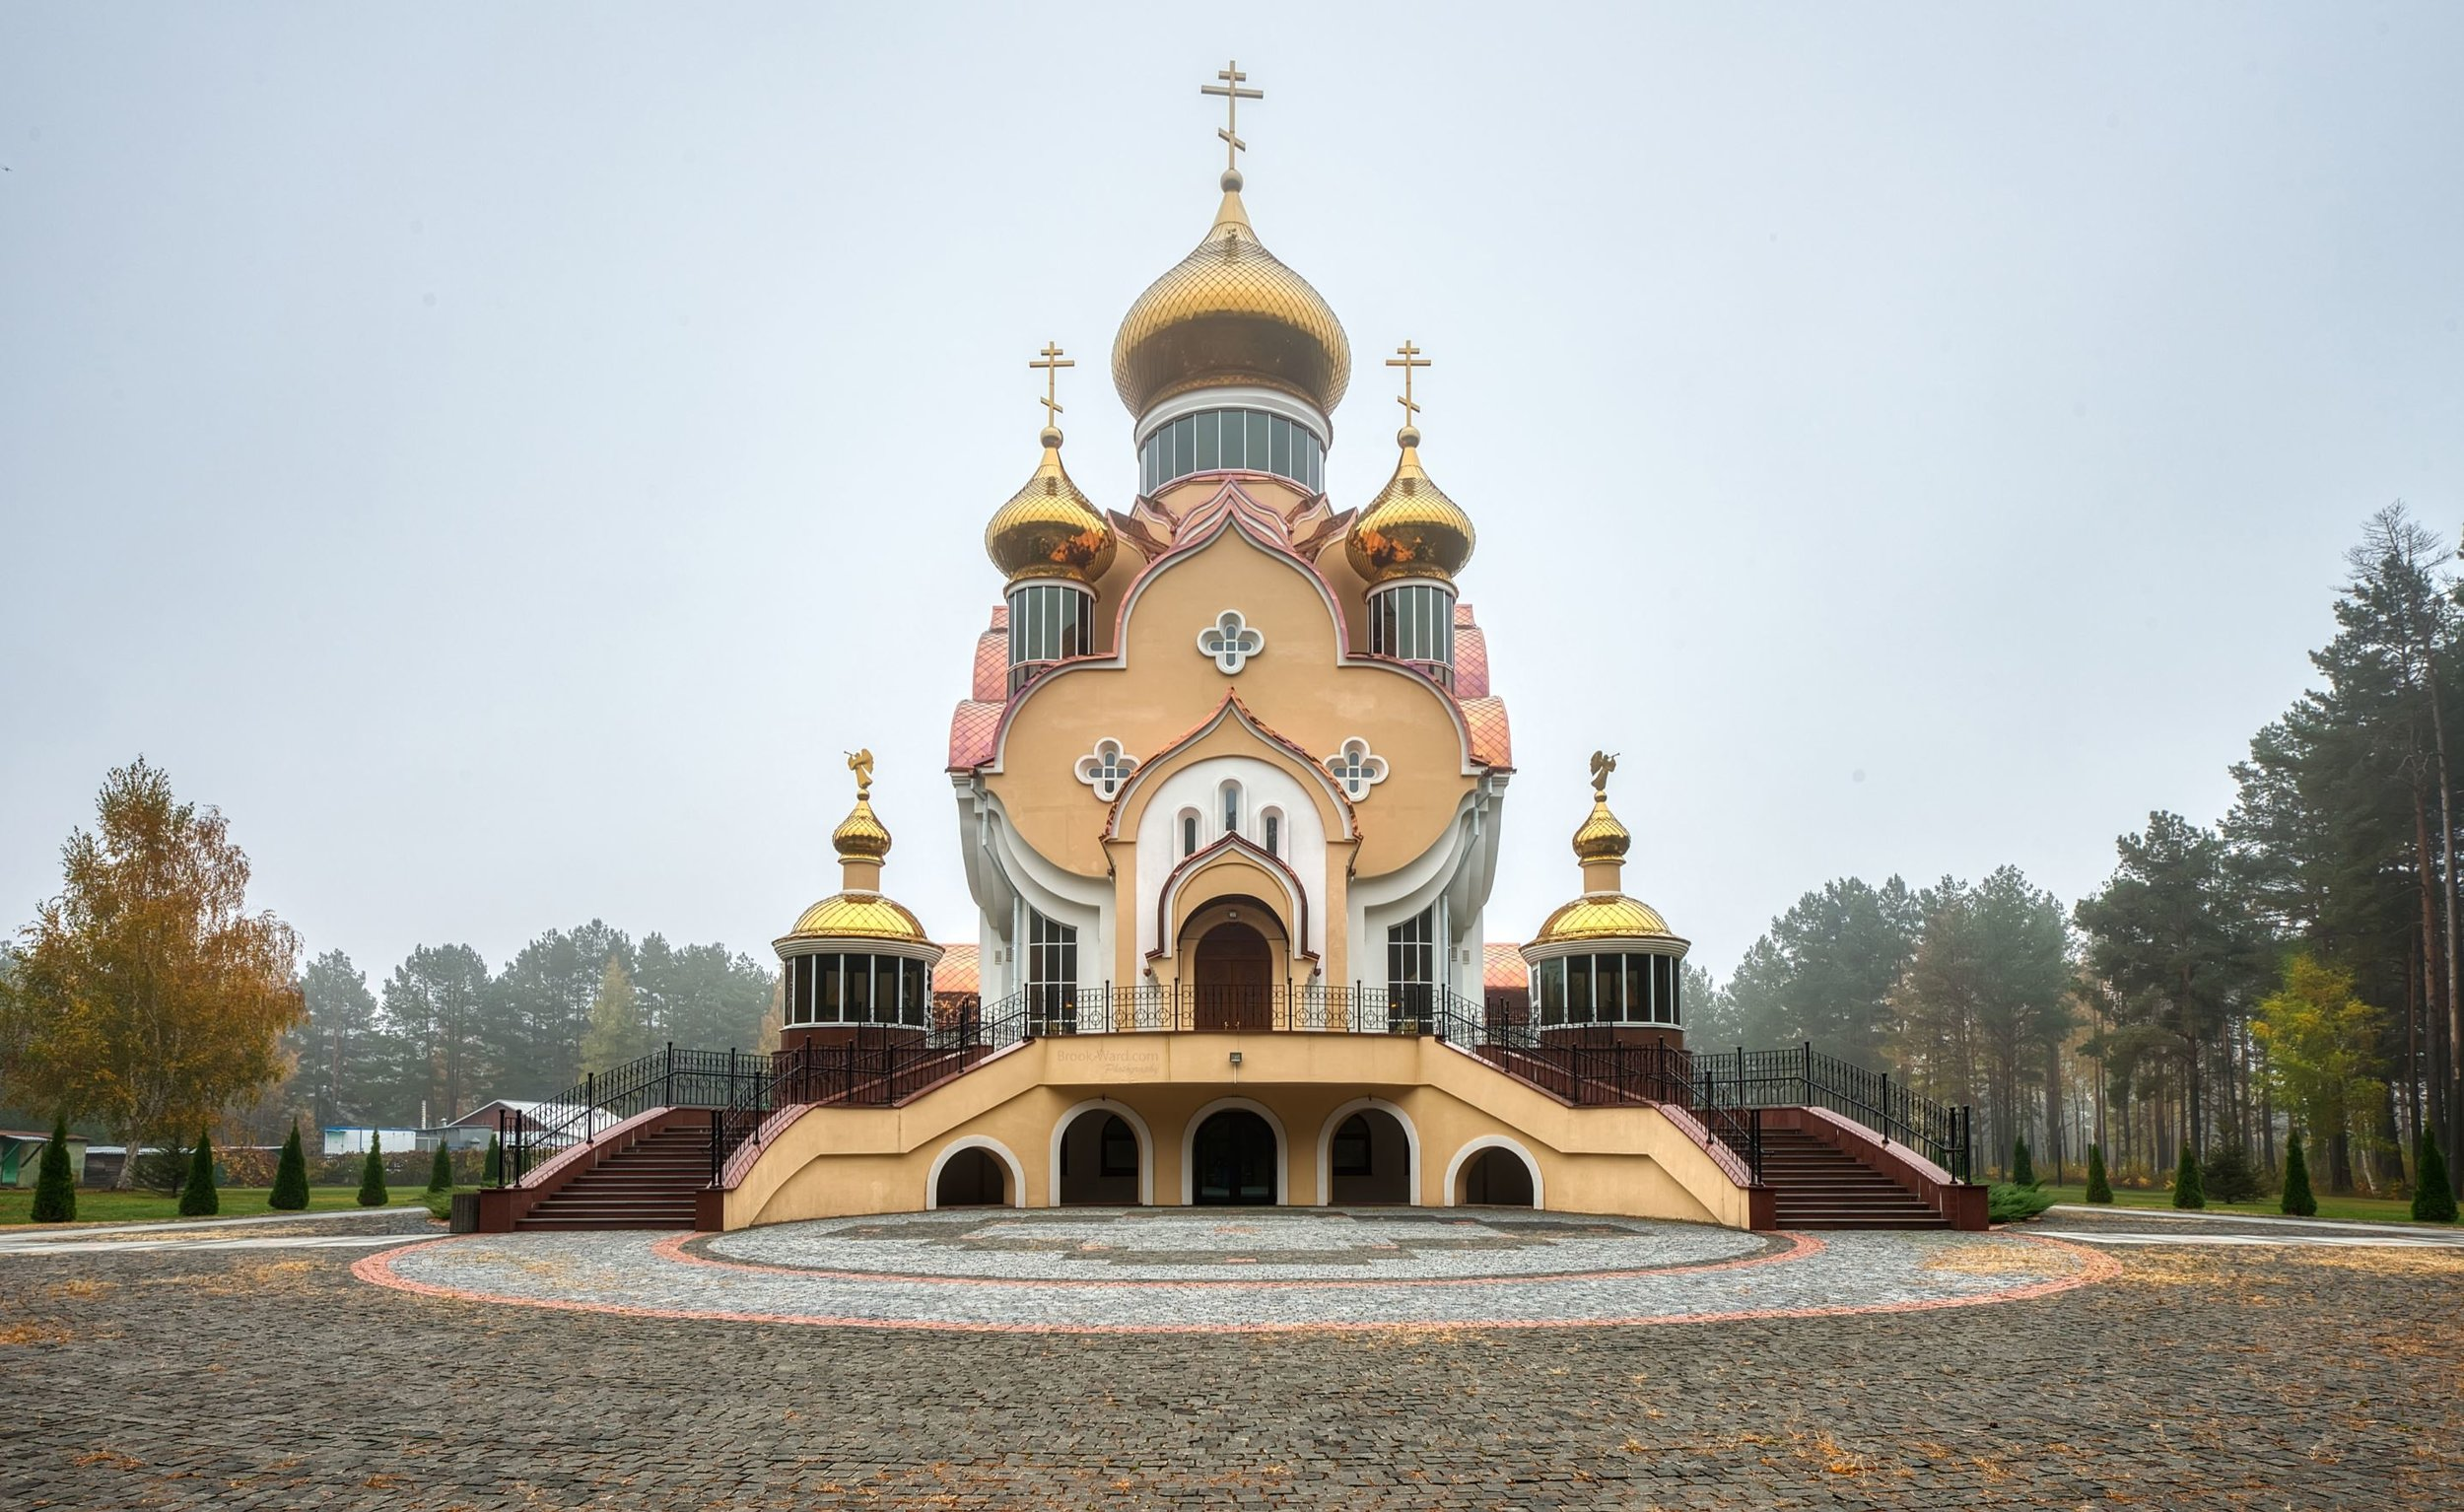 Church of St. Elias Ukrainian Orthodox - Slavutych